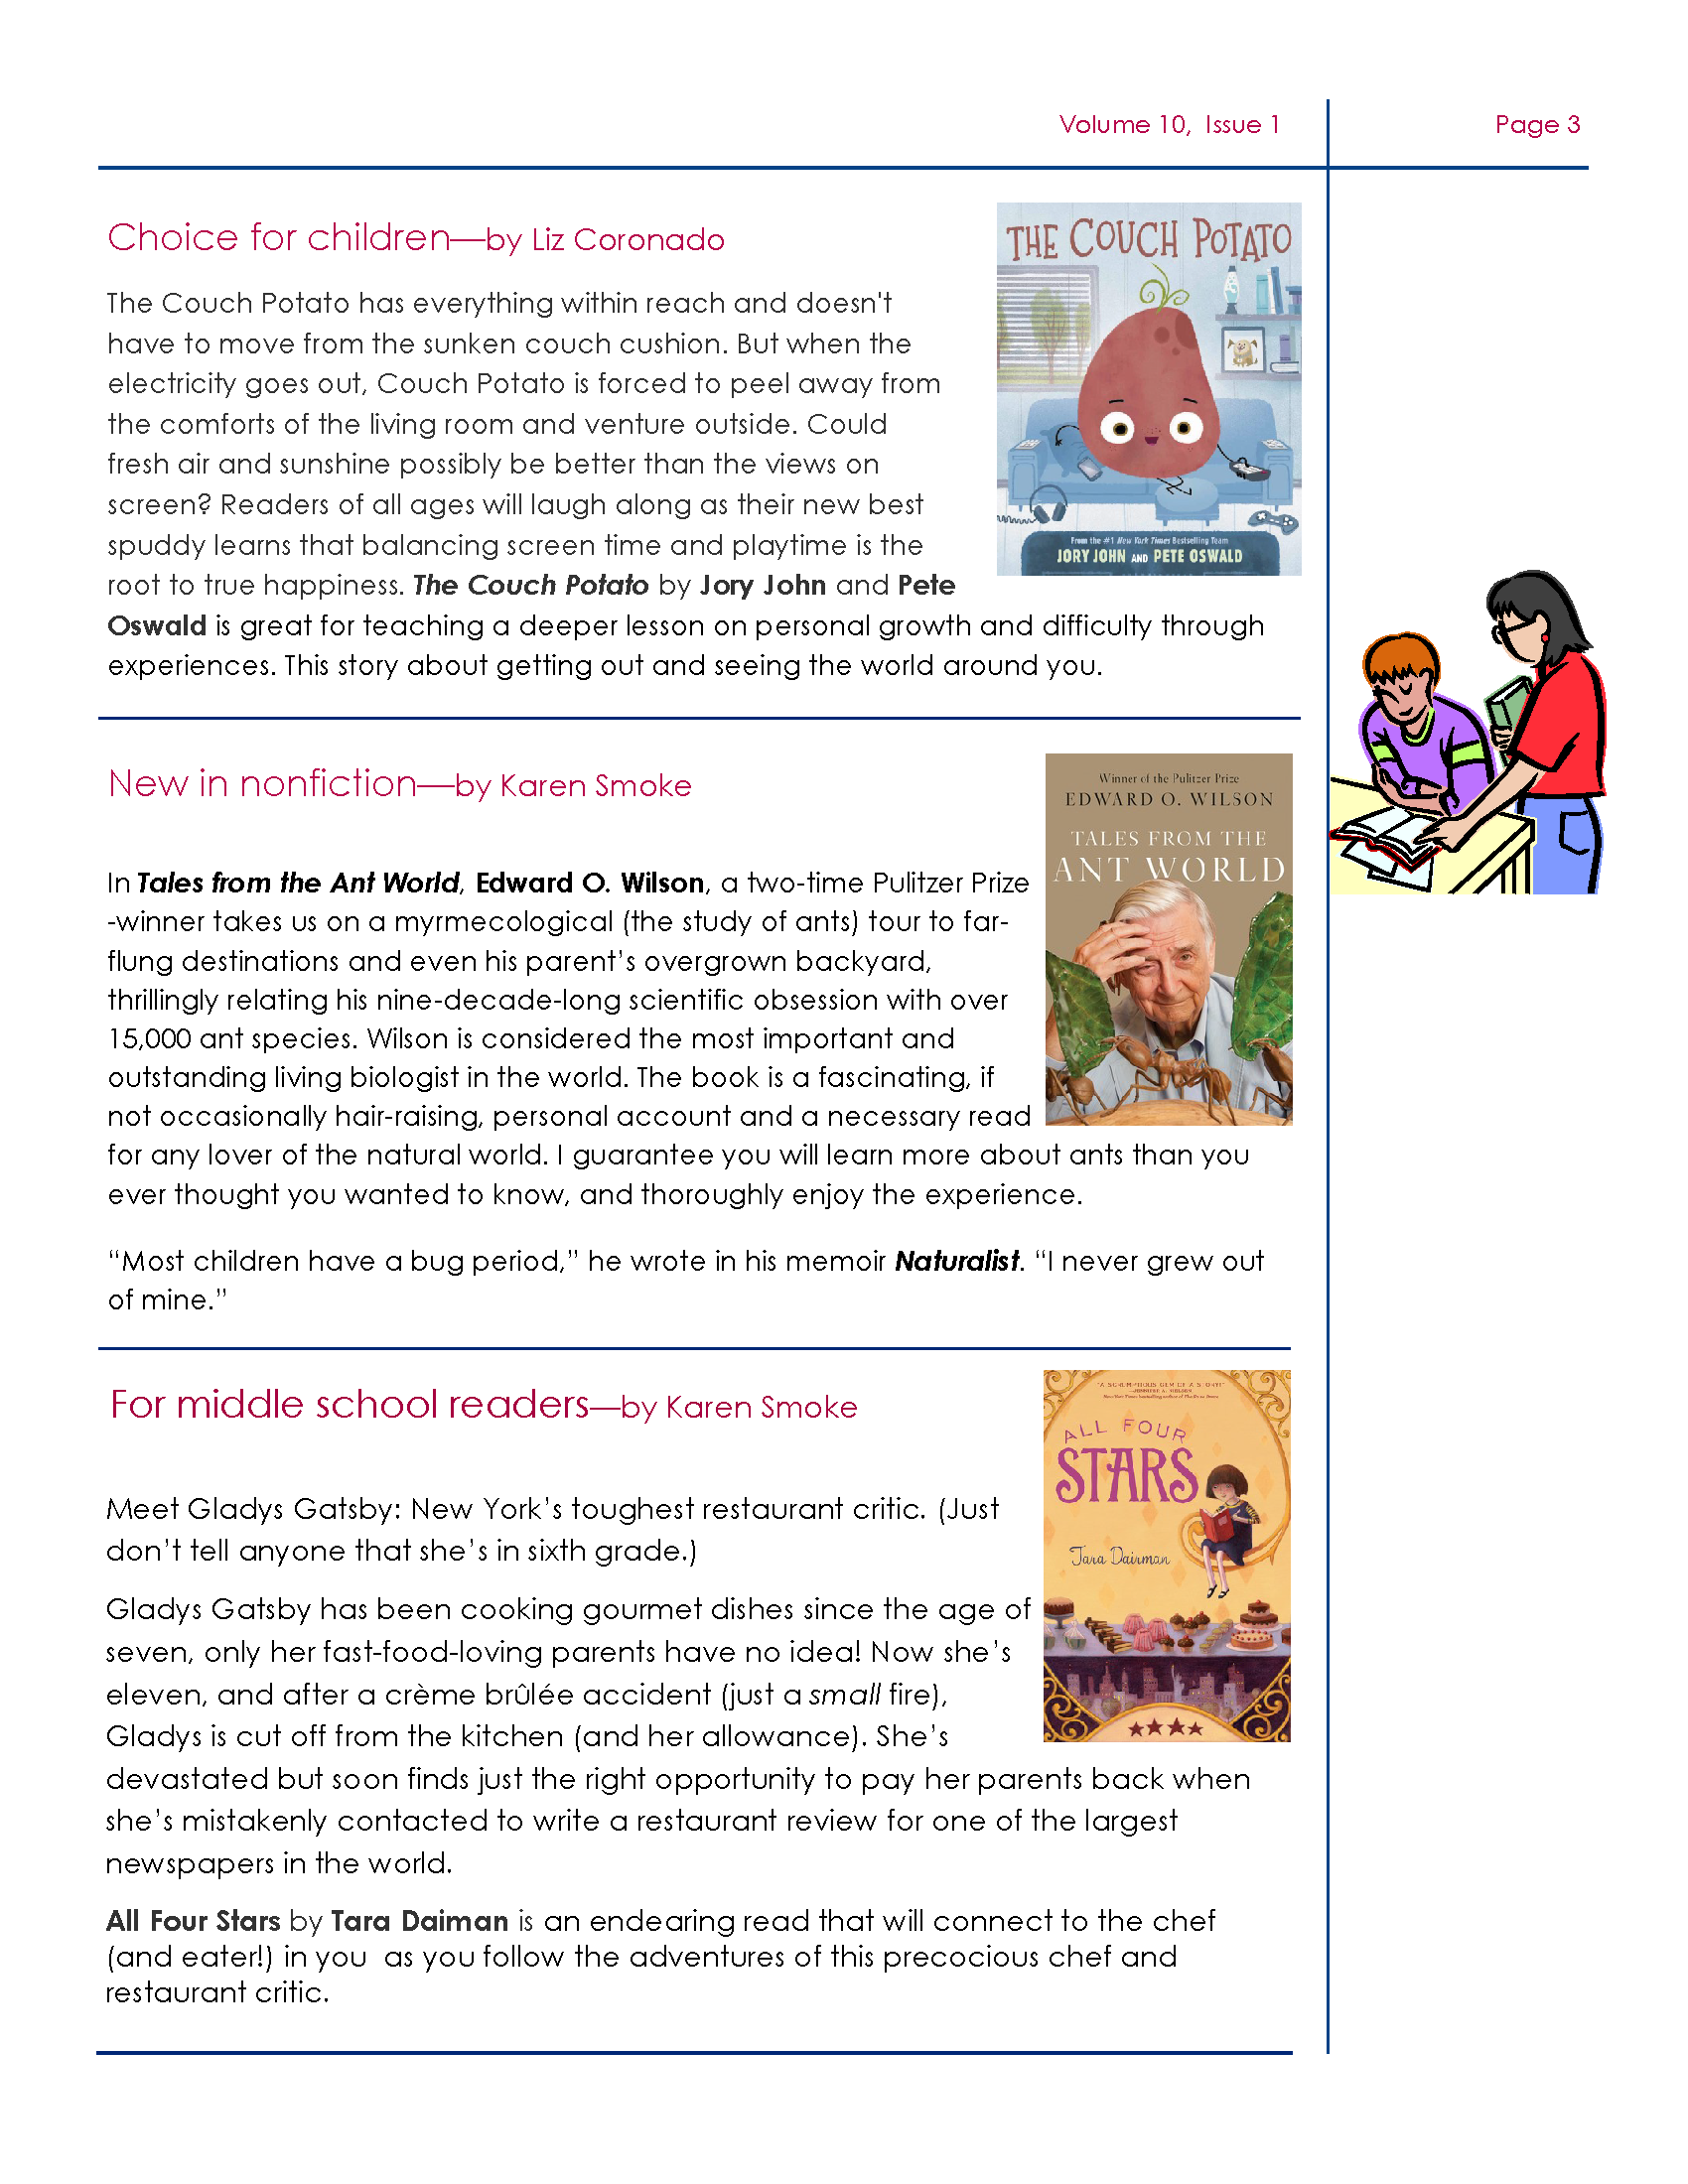 Image Page three of the DeSoto January Newsletter